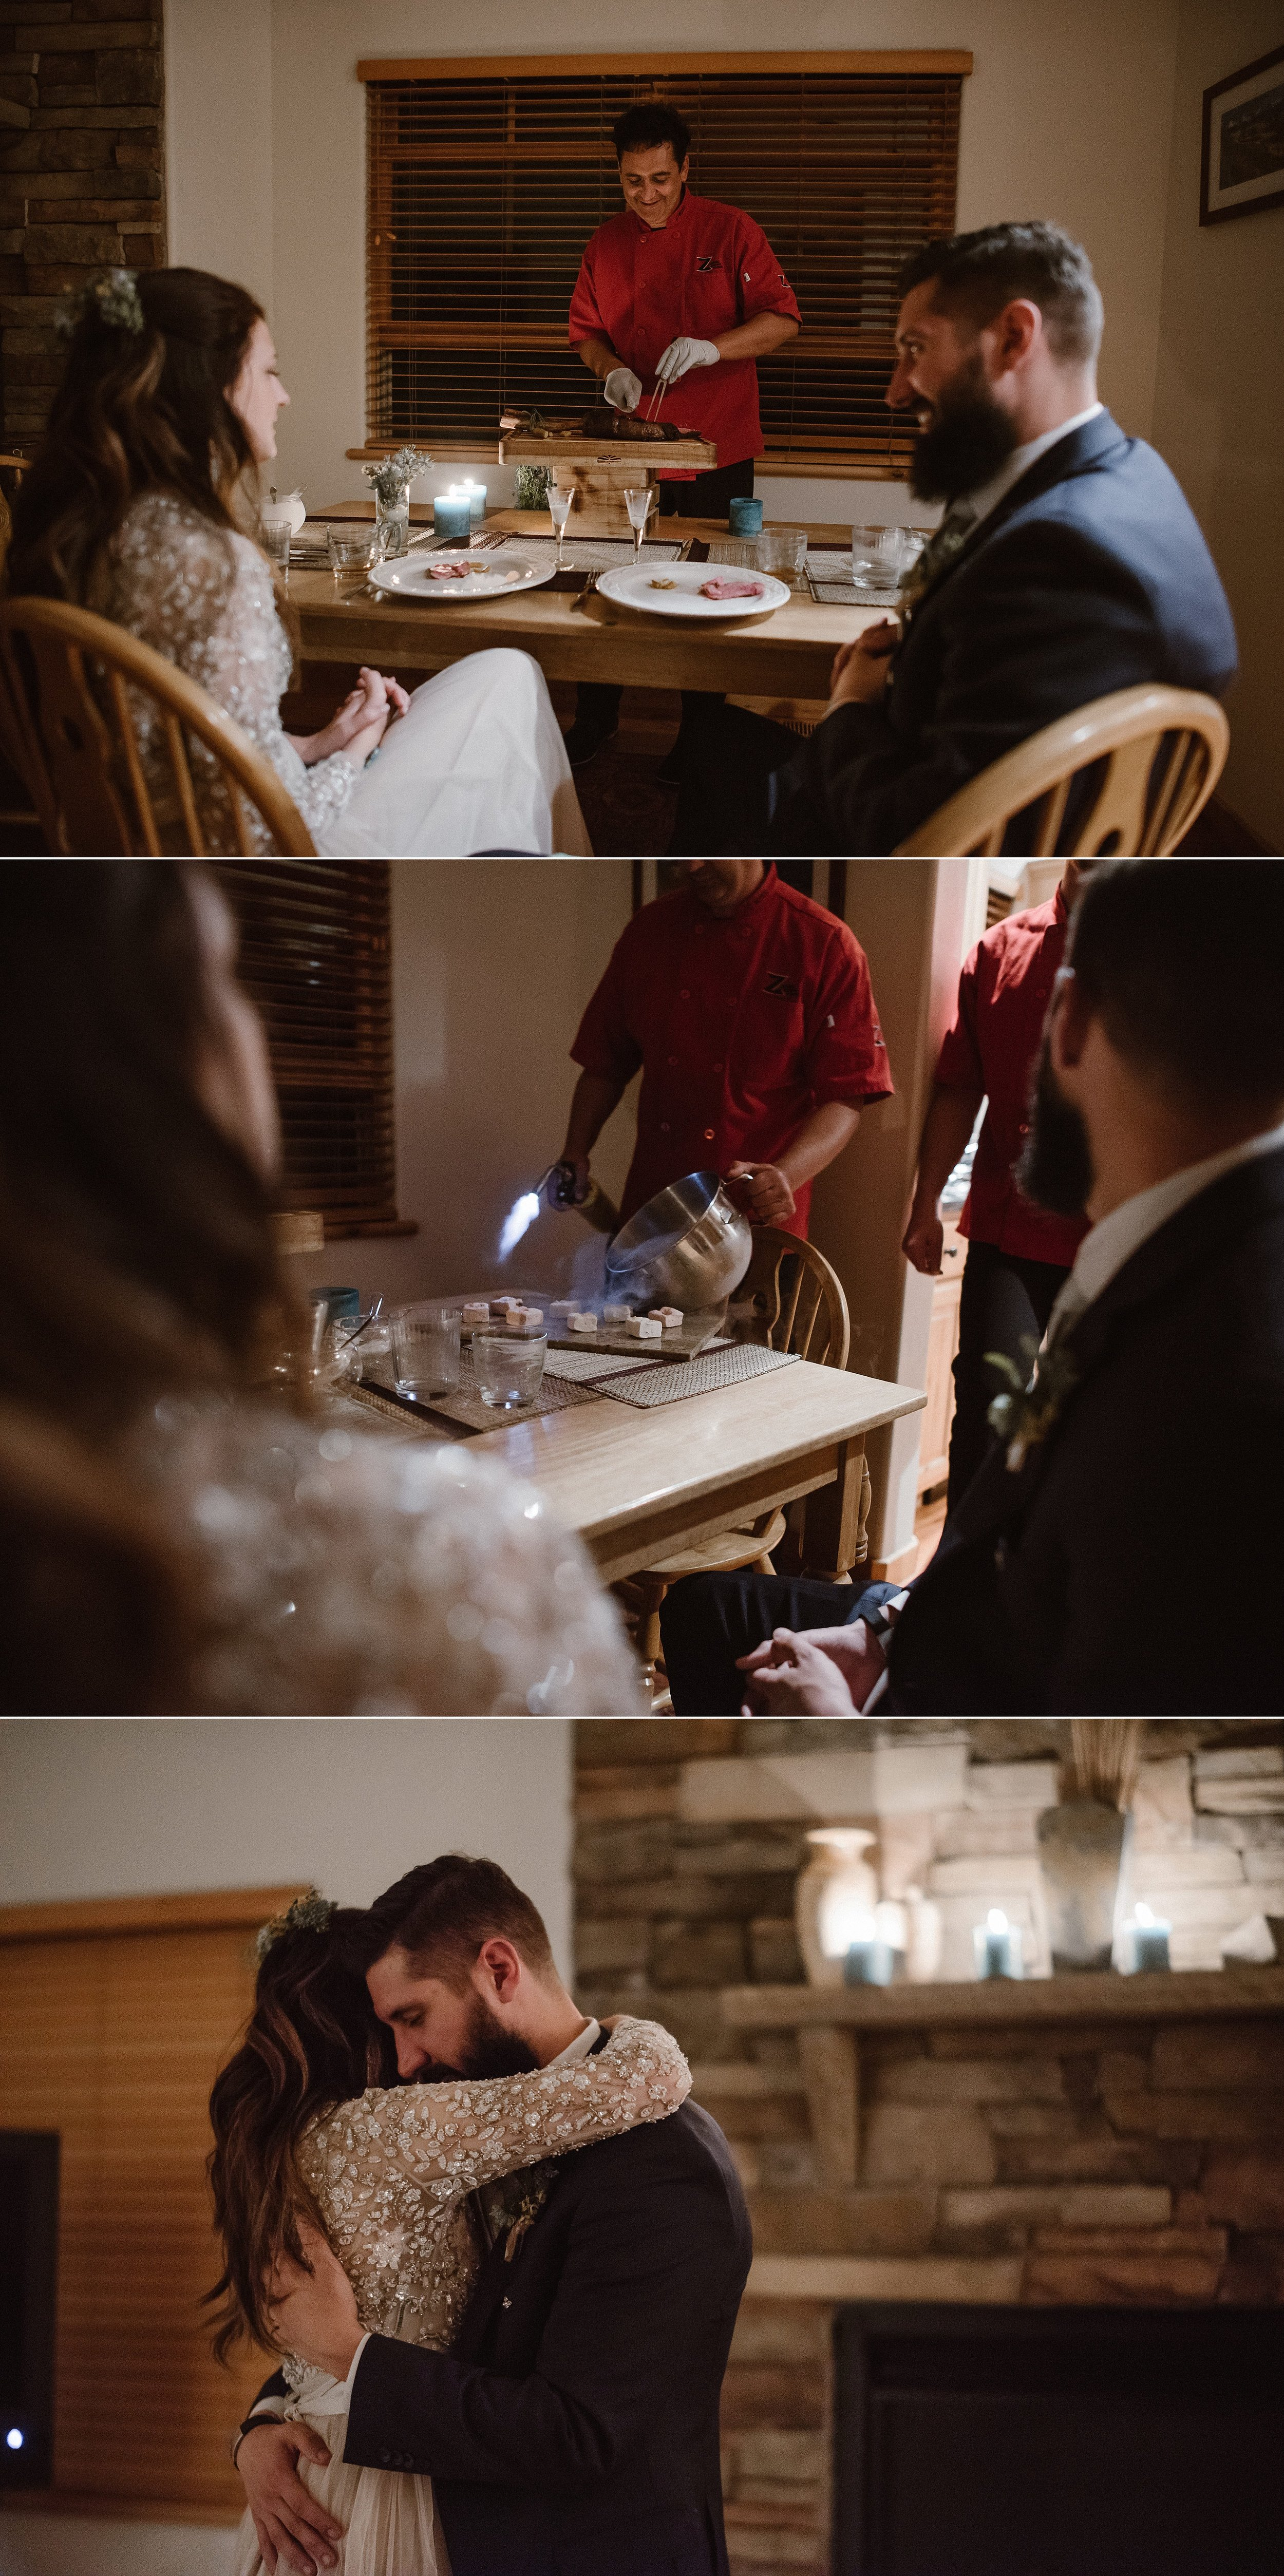 Ending their perfectly private elopement with an intimate first dance in the comfort of their own living room, with only their traveling elopement photographer Maddie Mae there to capture each sweet moment.